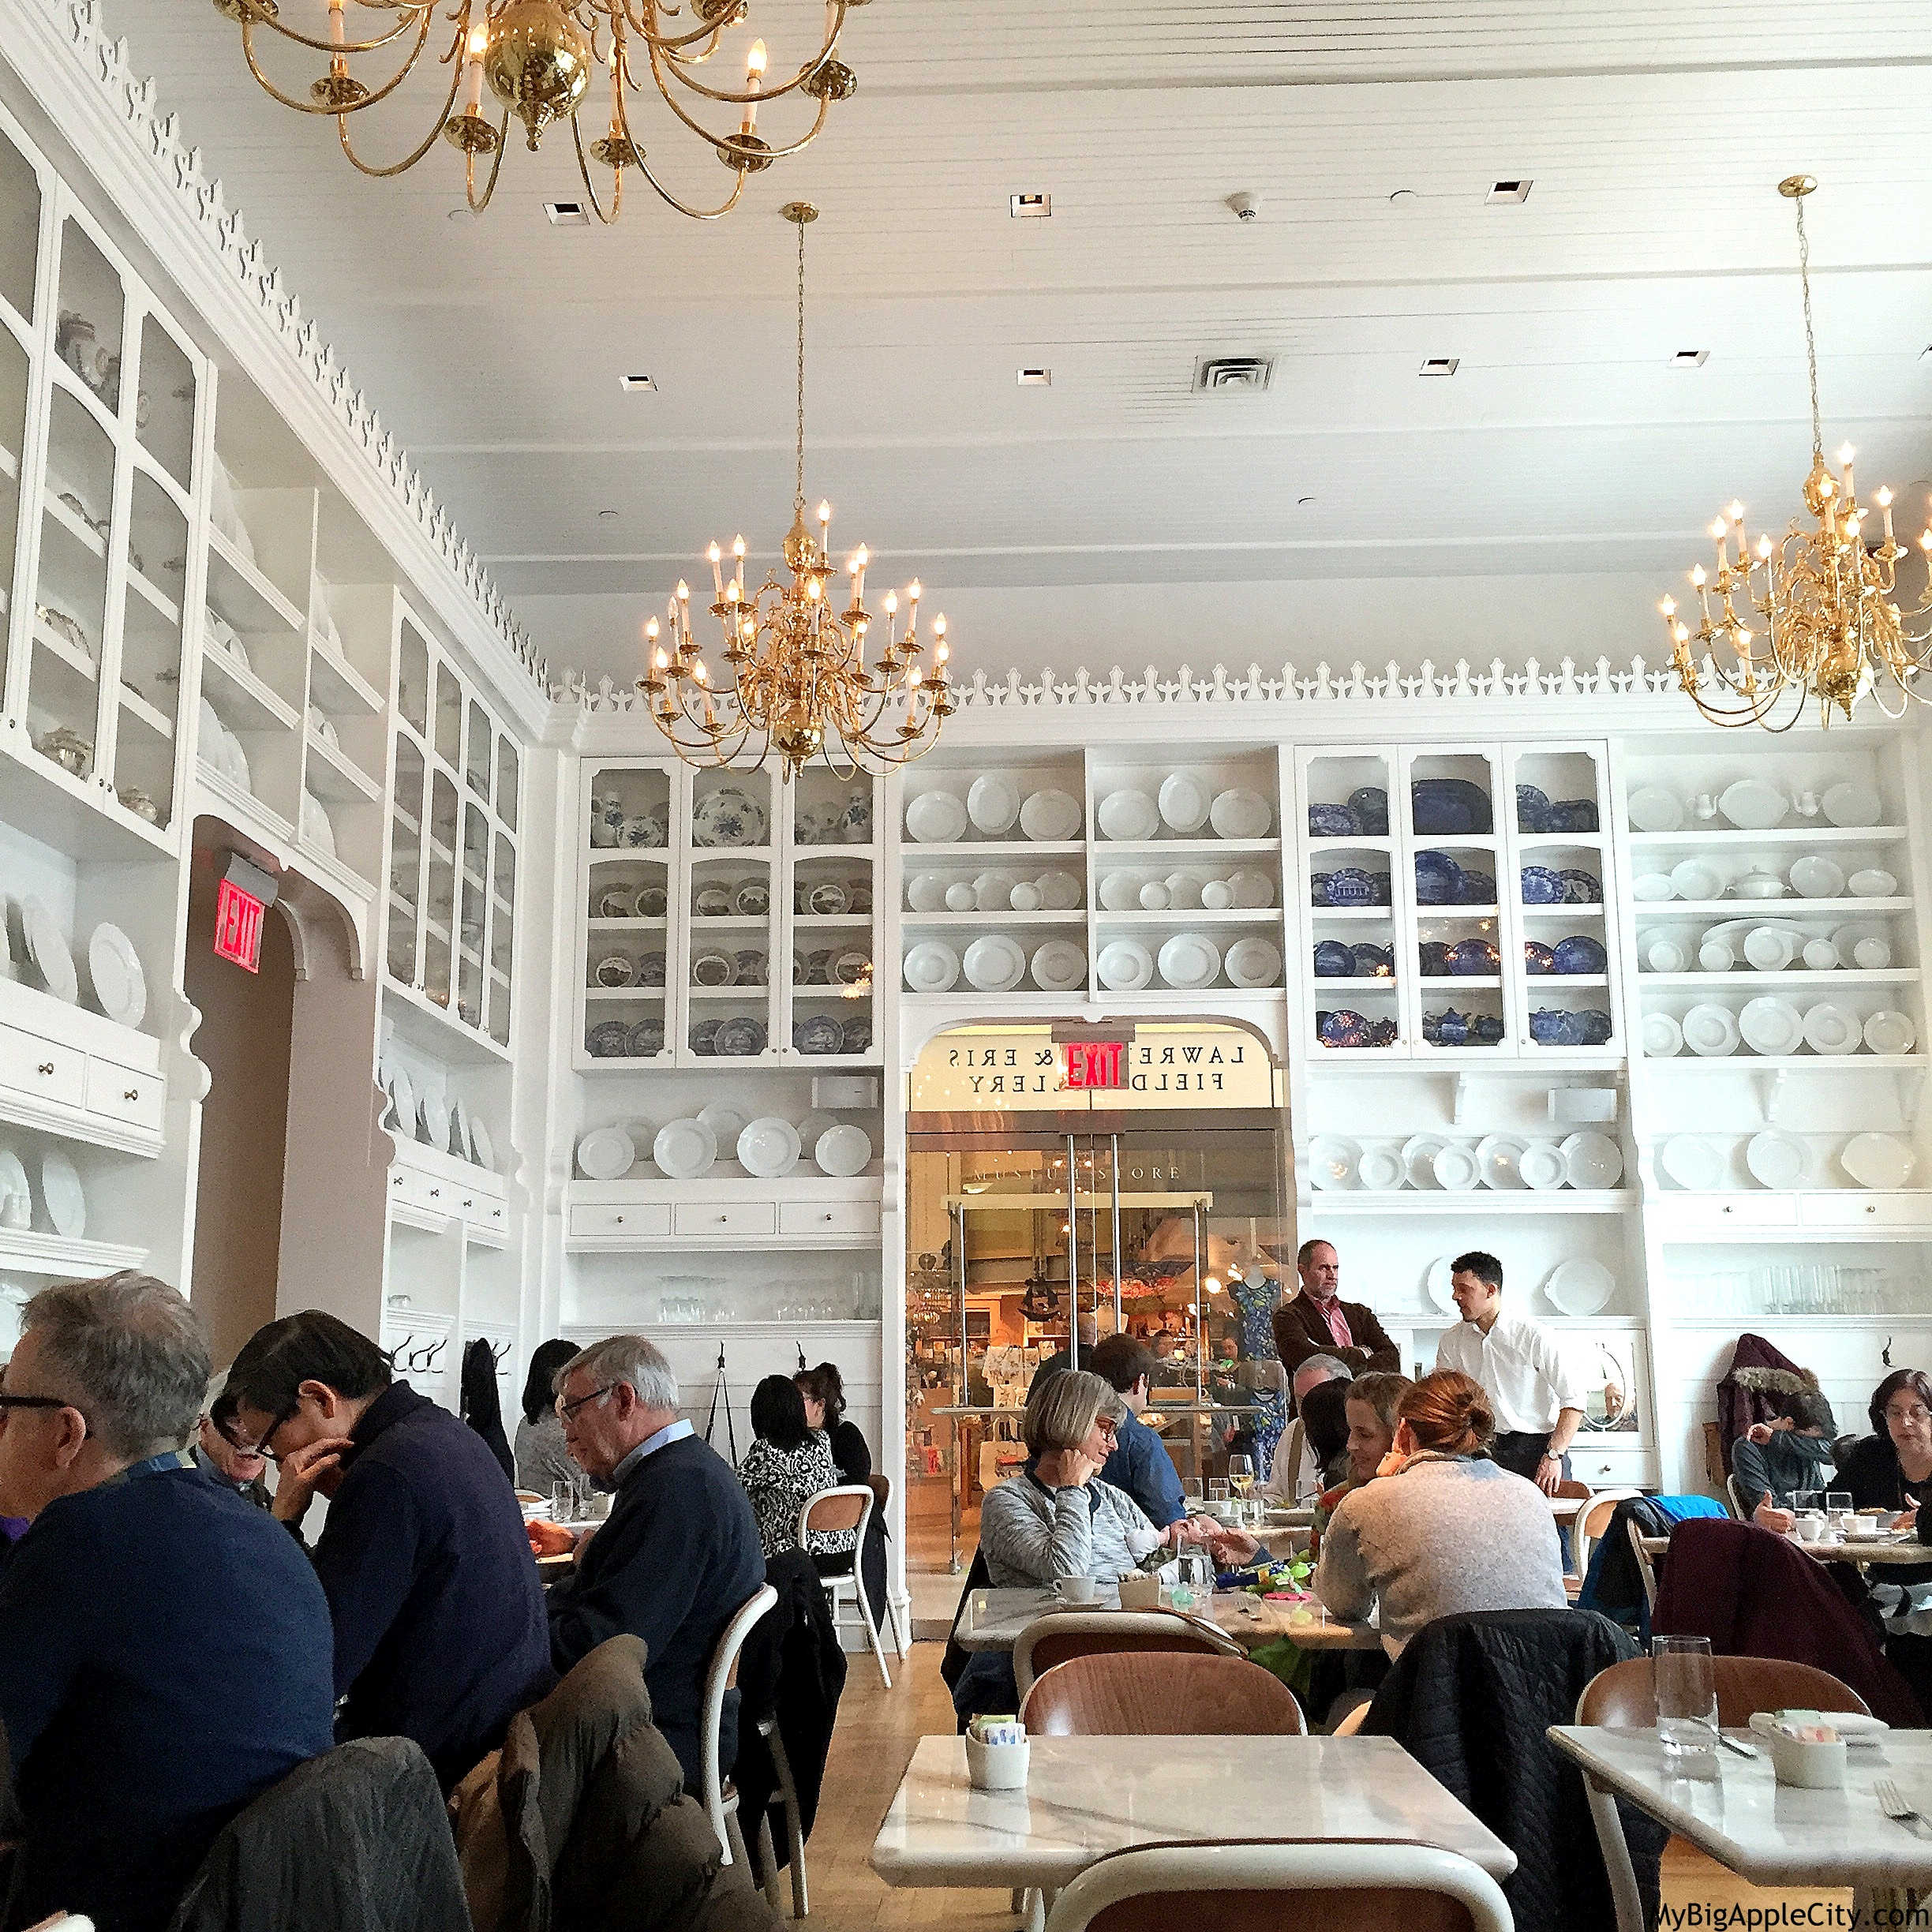 NYC-best-Brunch-2015-Caffe-Storico-travelblog